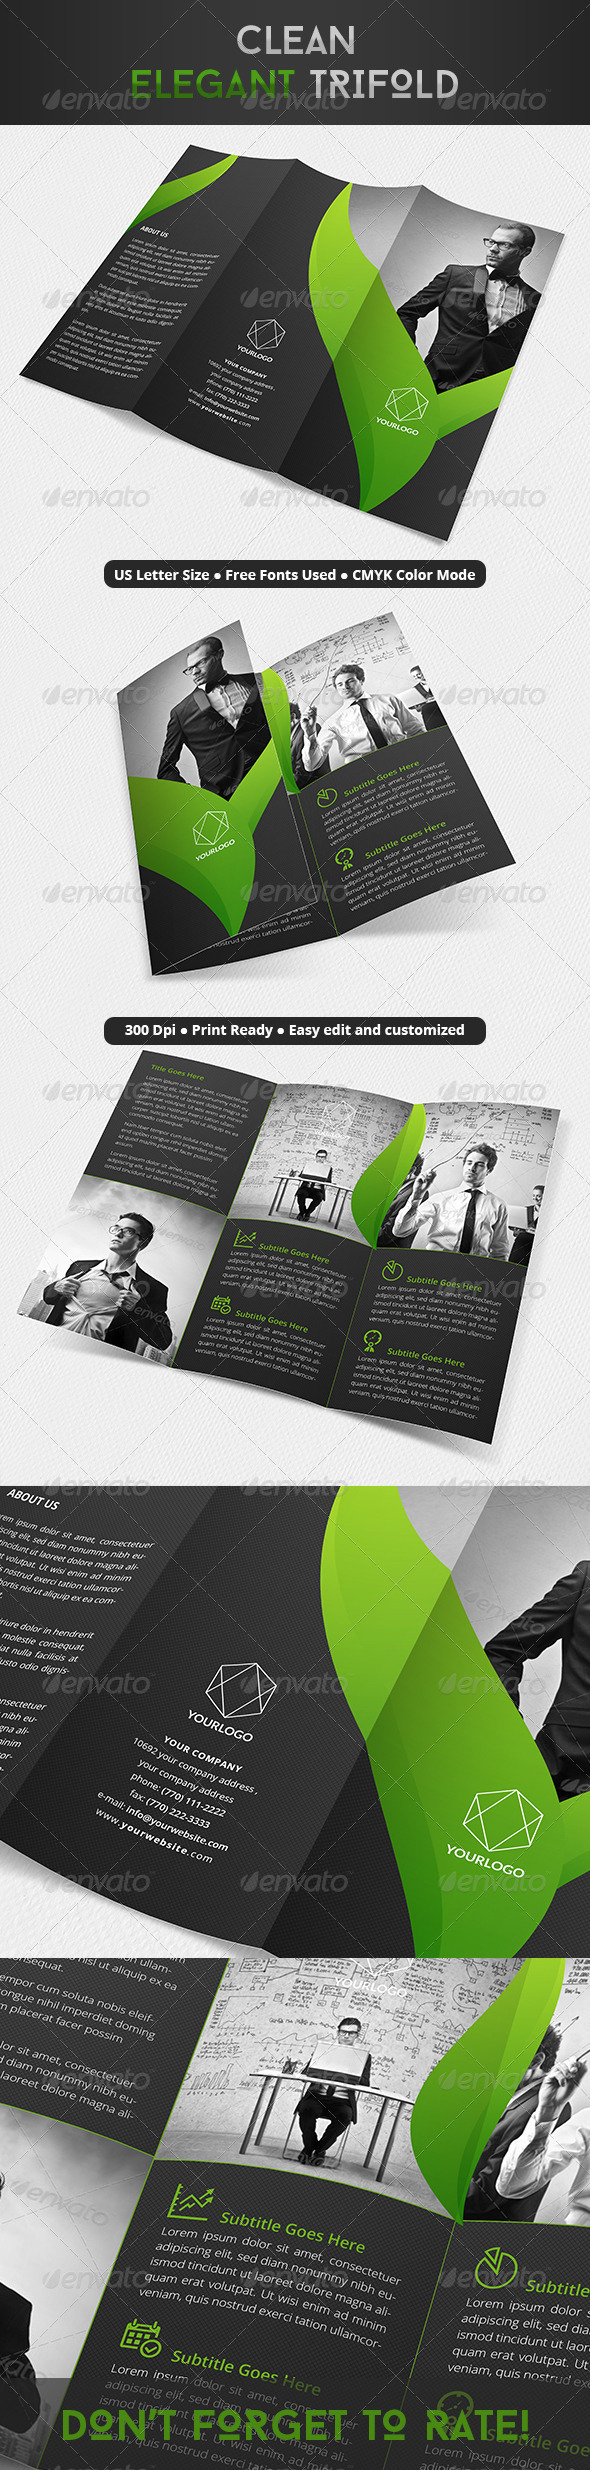 GraphicRiver Clean Elegant Trifold 8083895